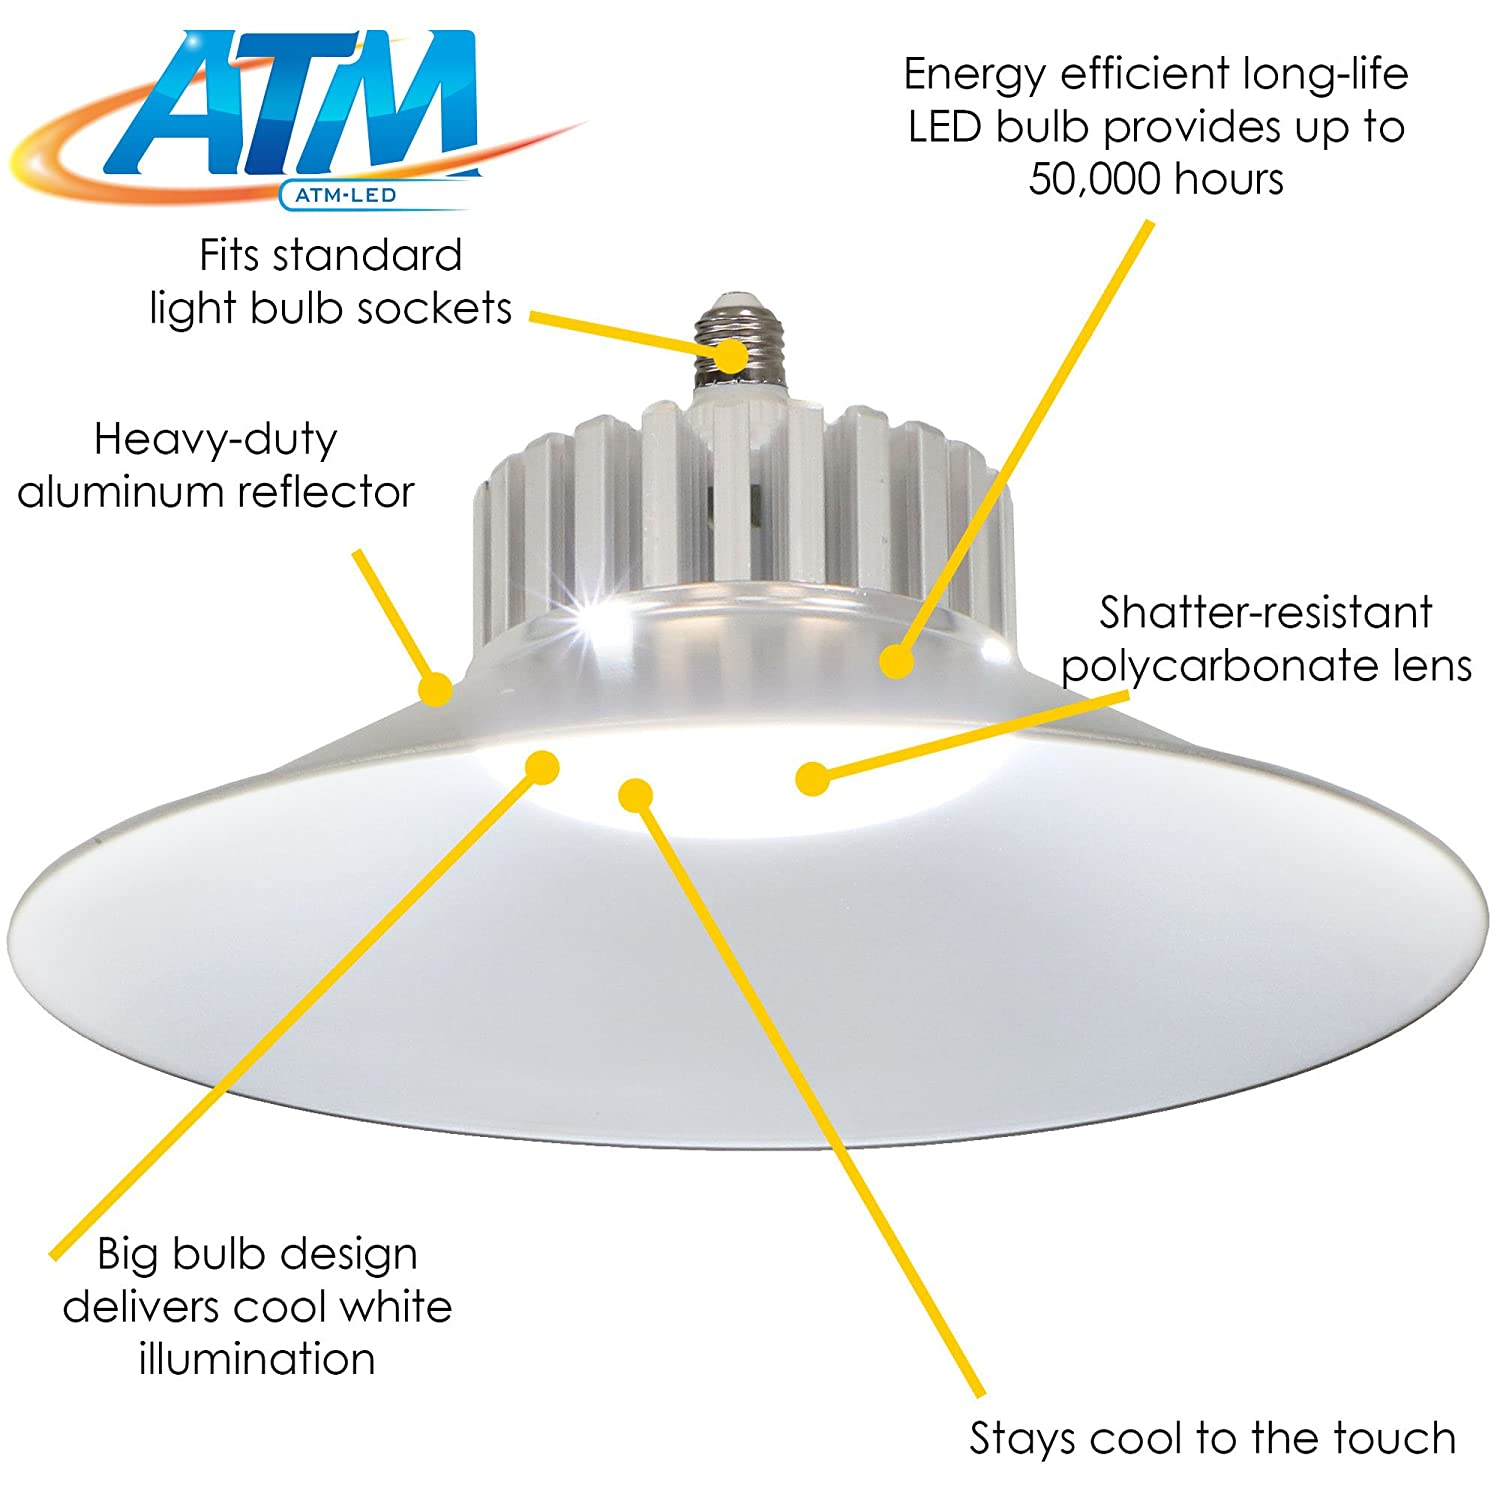 Garage Workshop or Shed ATM-LED 6-Pack 30W Energy-Efficient 6000K Daylight LED Replacement Utility Bulb with Aluminum Reflector 3300 Lumens Basement